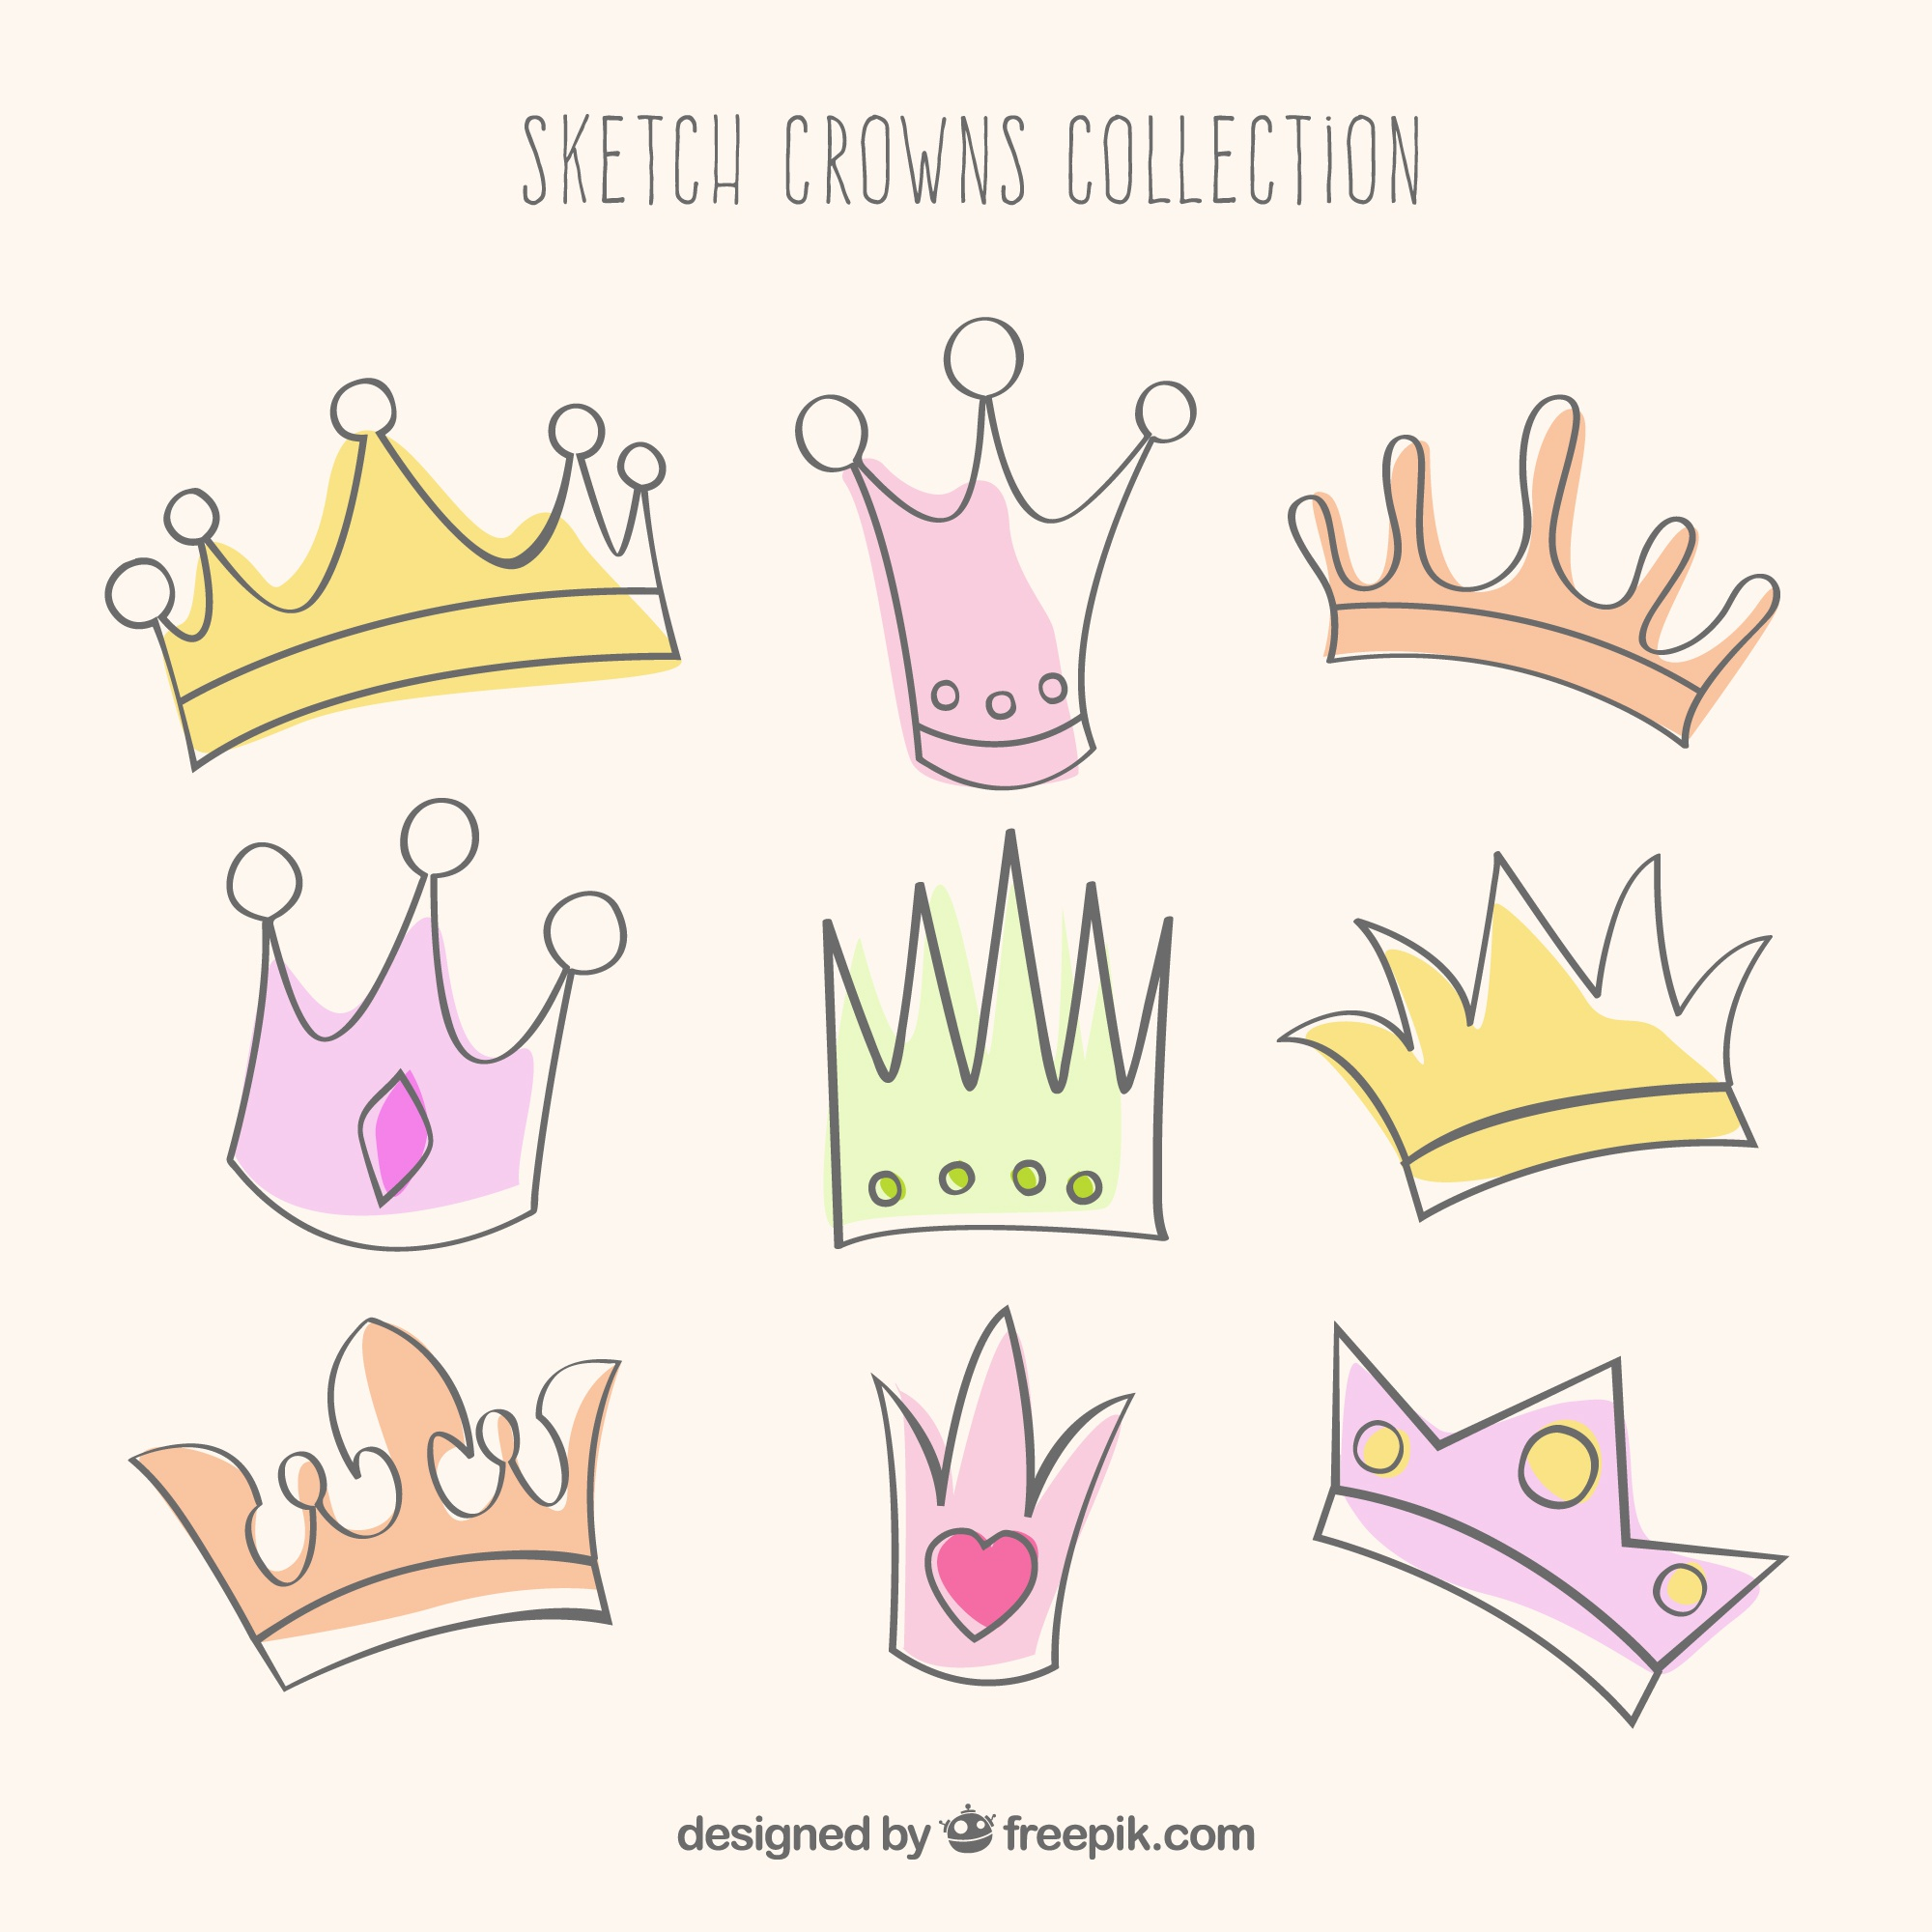 Sketchy crowns collection